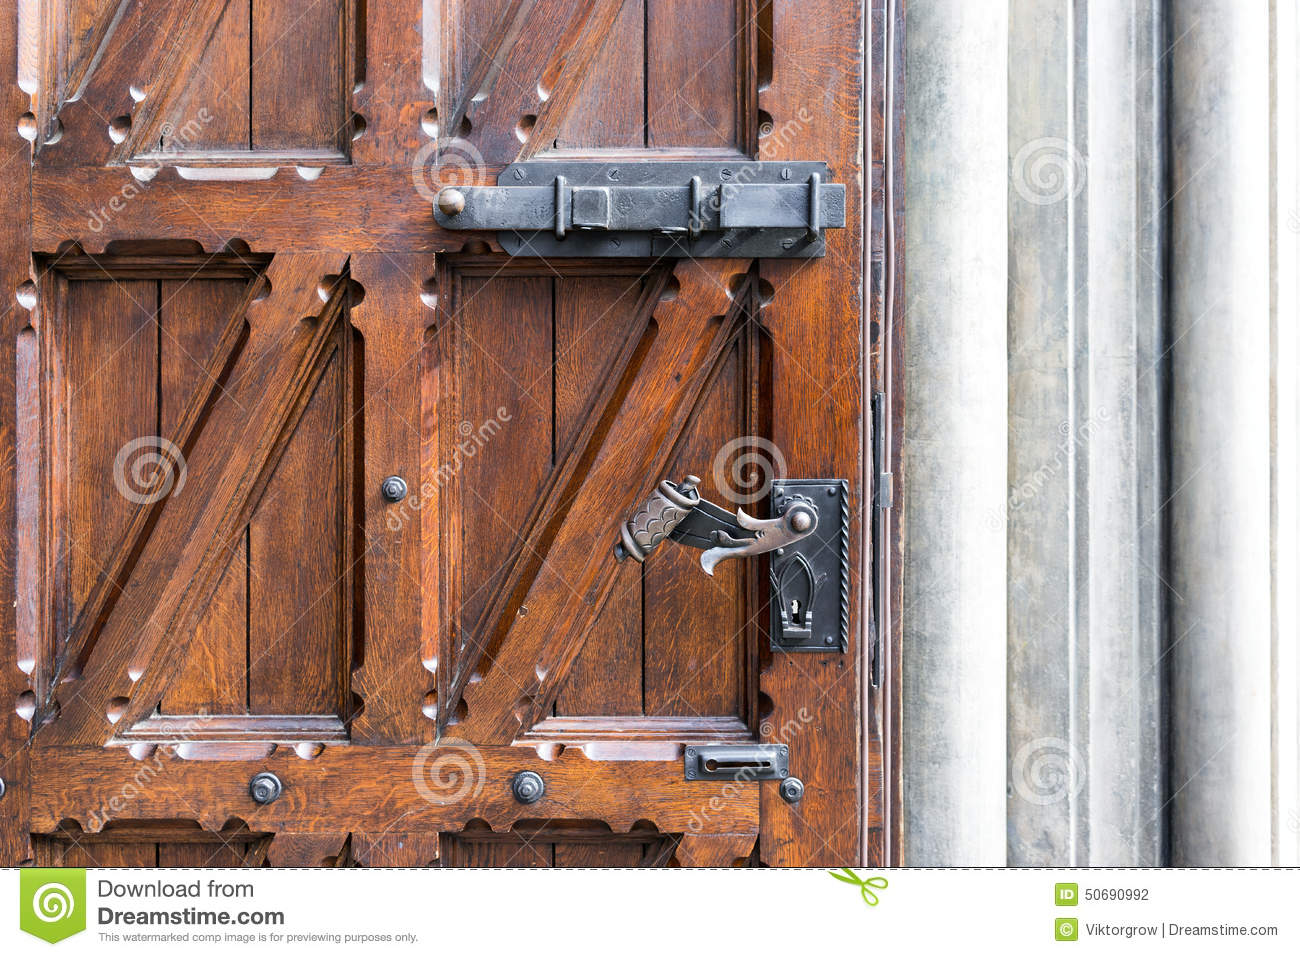 957 #945937 Old Wooden Door With Wrought Iron Handle Stock Photo Image: 50690992 image Wrought Iron And Wood Doors 40031300